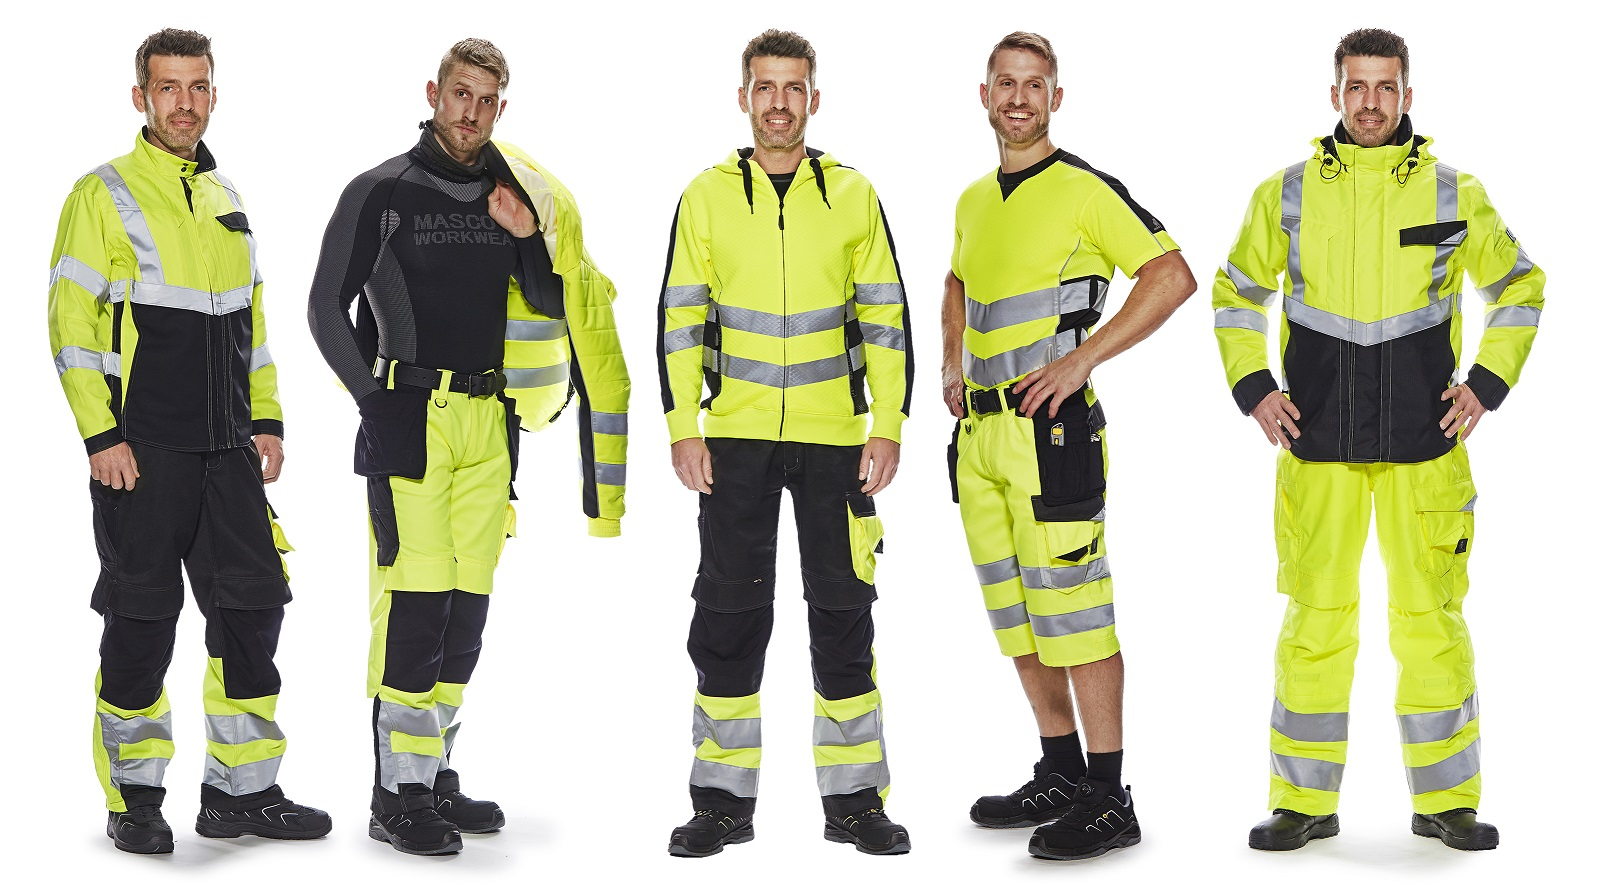 Photo of Best Places to Buy Flame Resistant workwear in Columbus, Ohio.